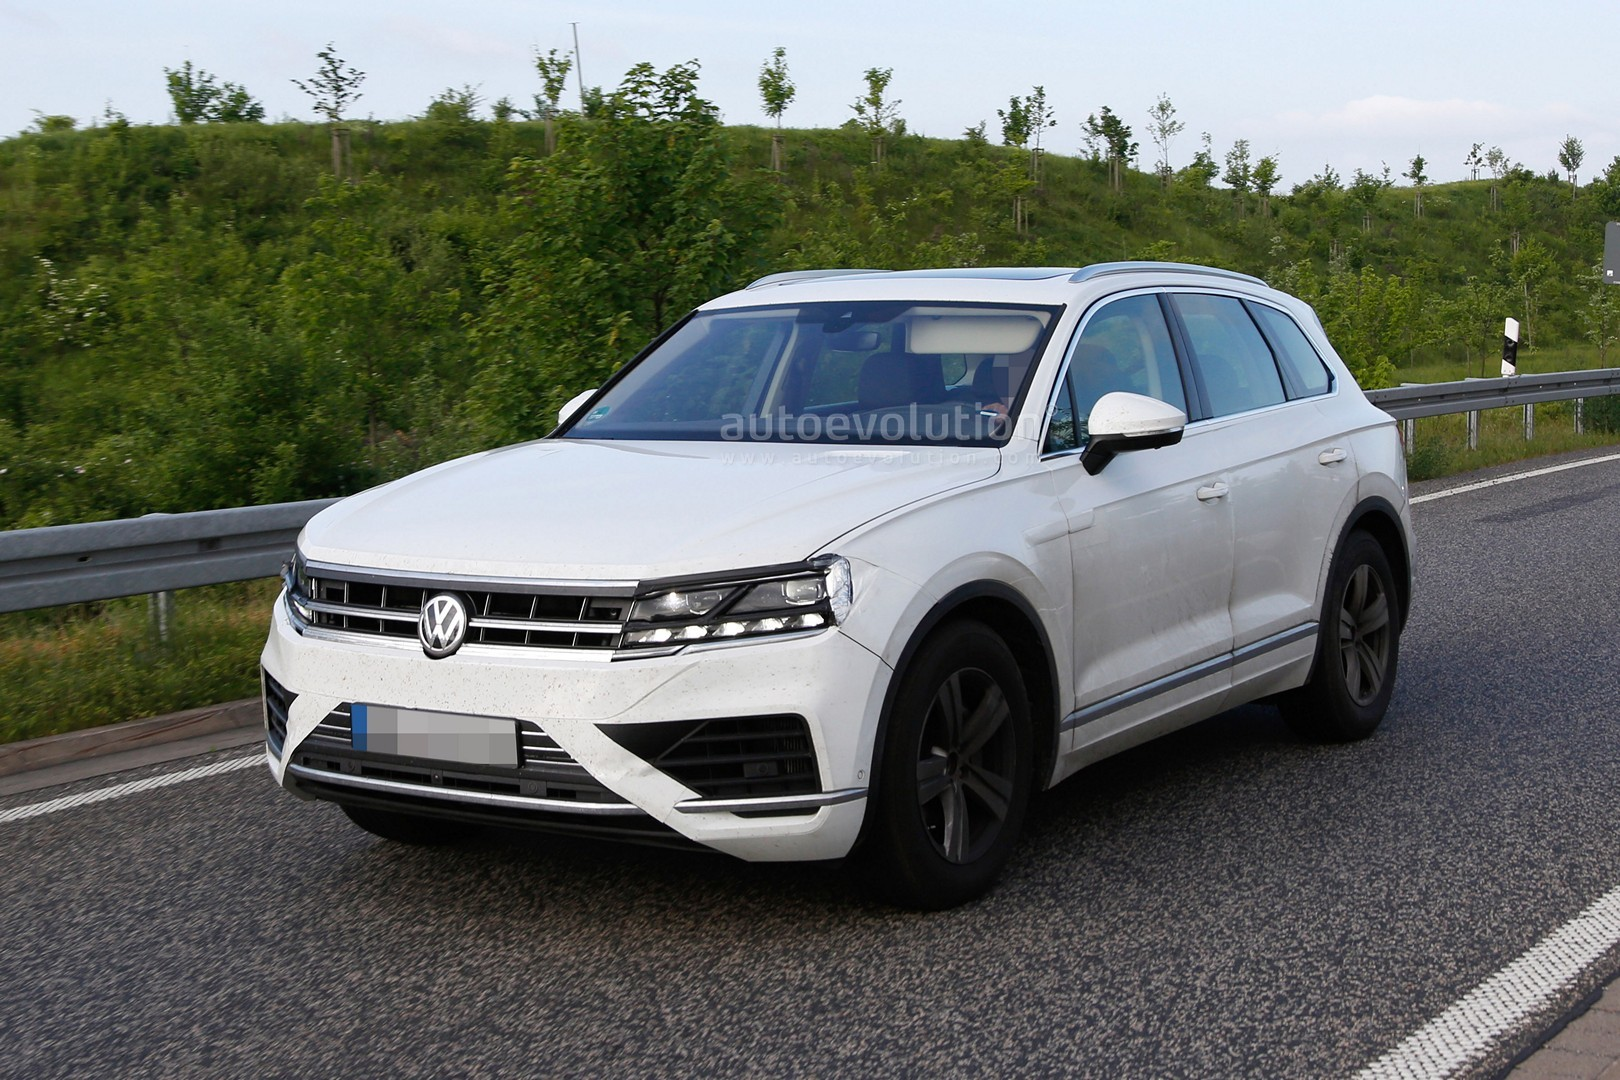 2018 volkswagen touareg spied almost undisguised. Black Bedroom Furniture Sets. Home Design Ideas